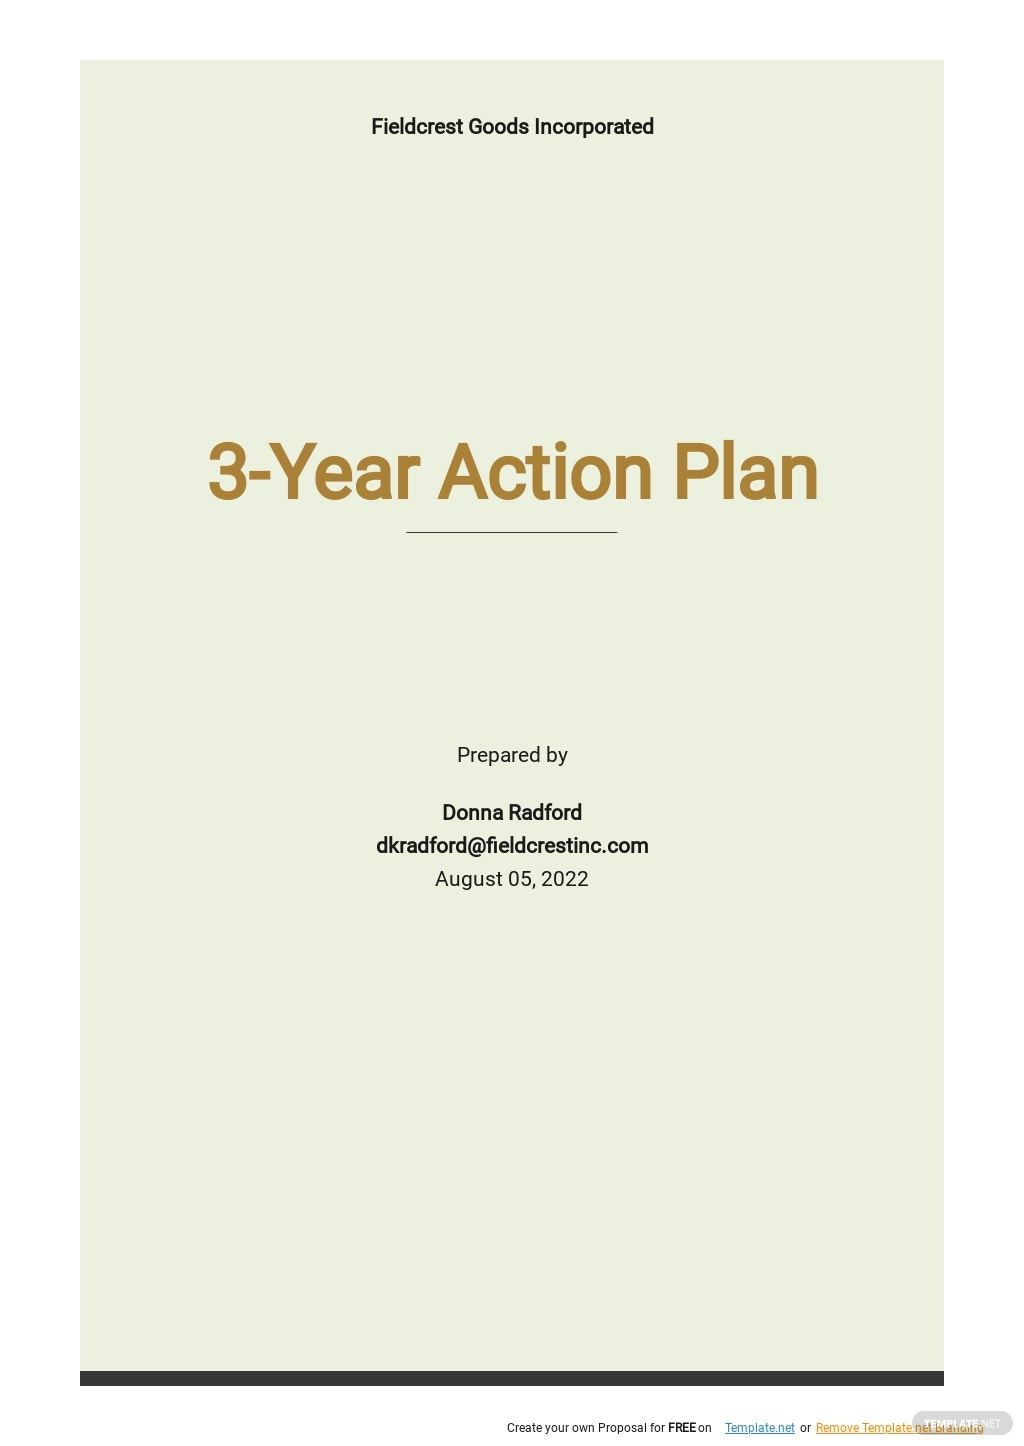 3 Year Action Plan Template.jpe